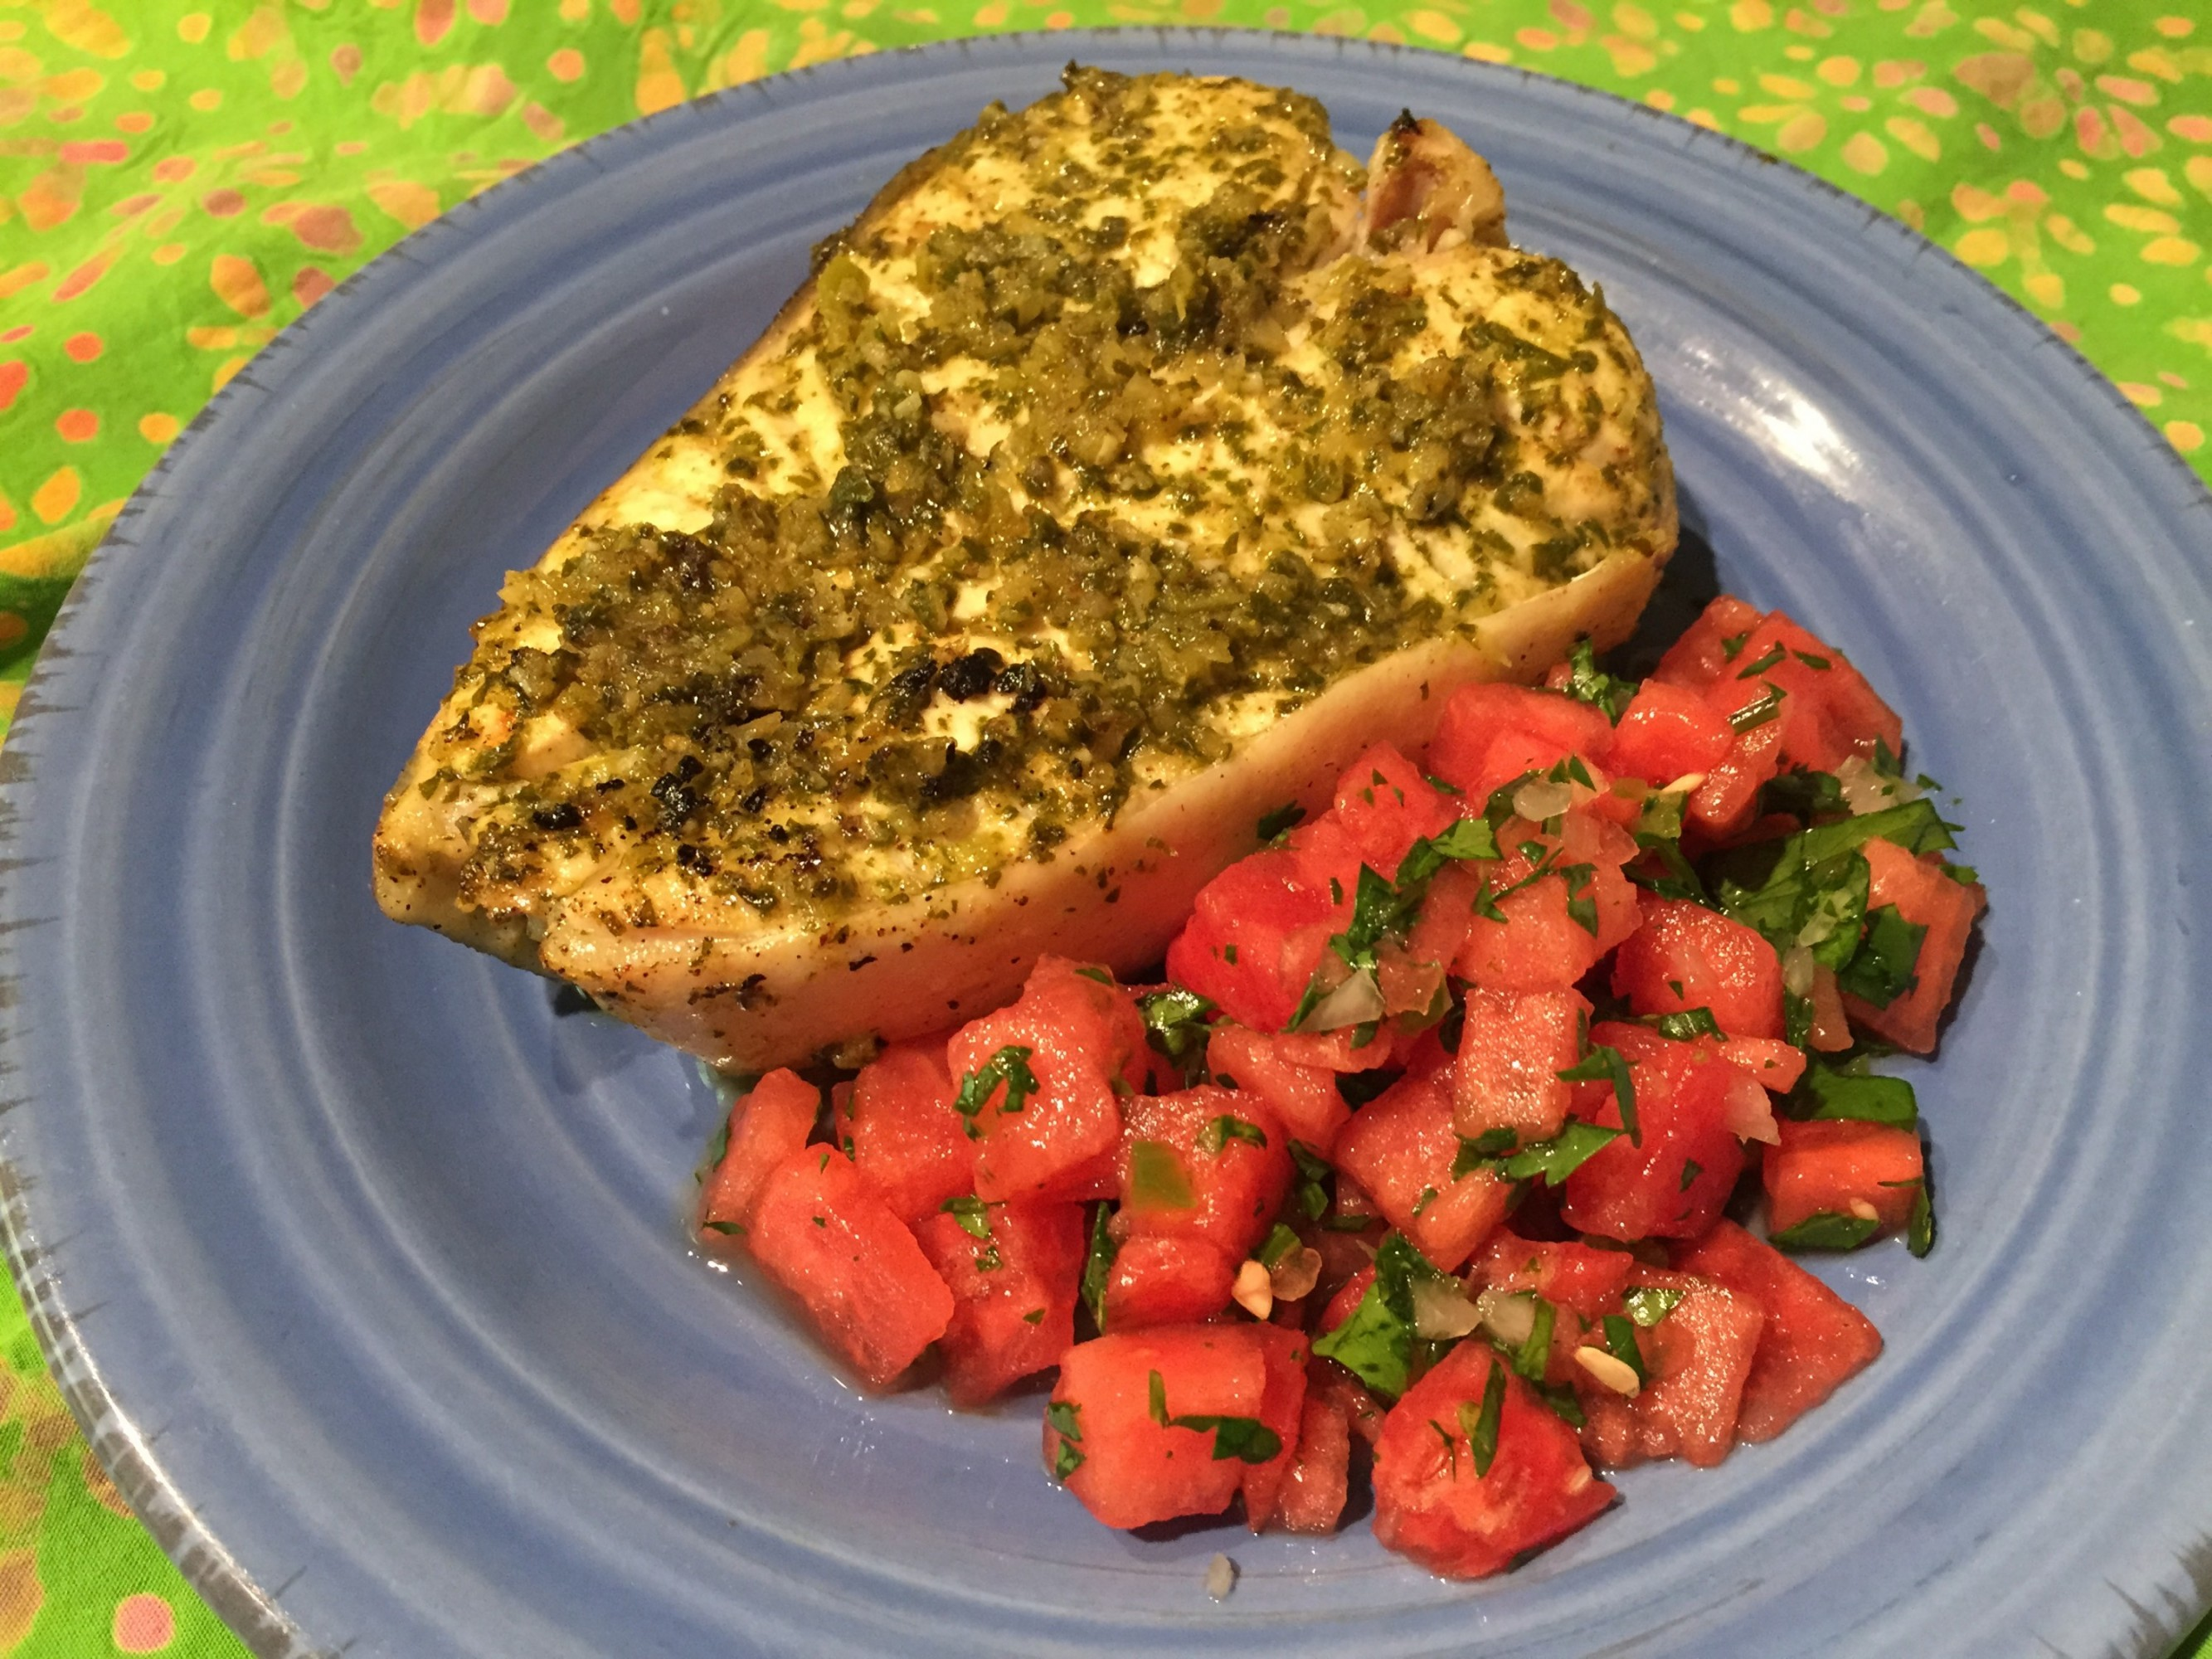 Savory Cilantro Lime Halibut with Watermelon Salsa